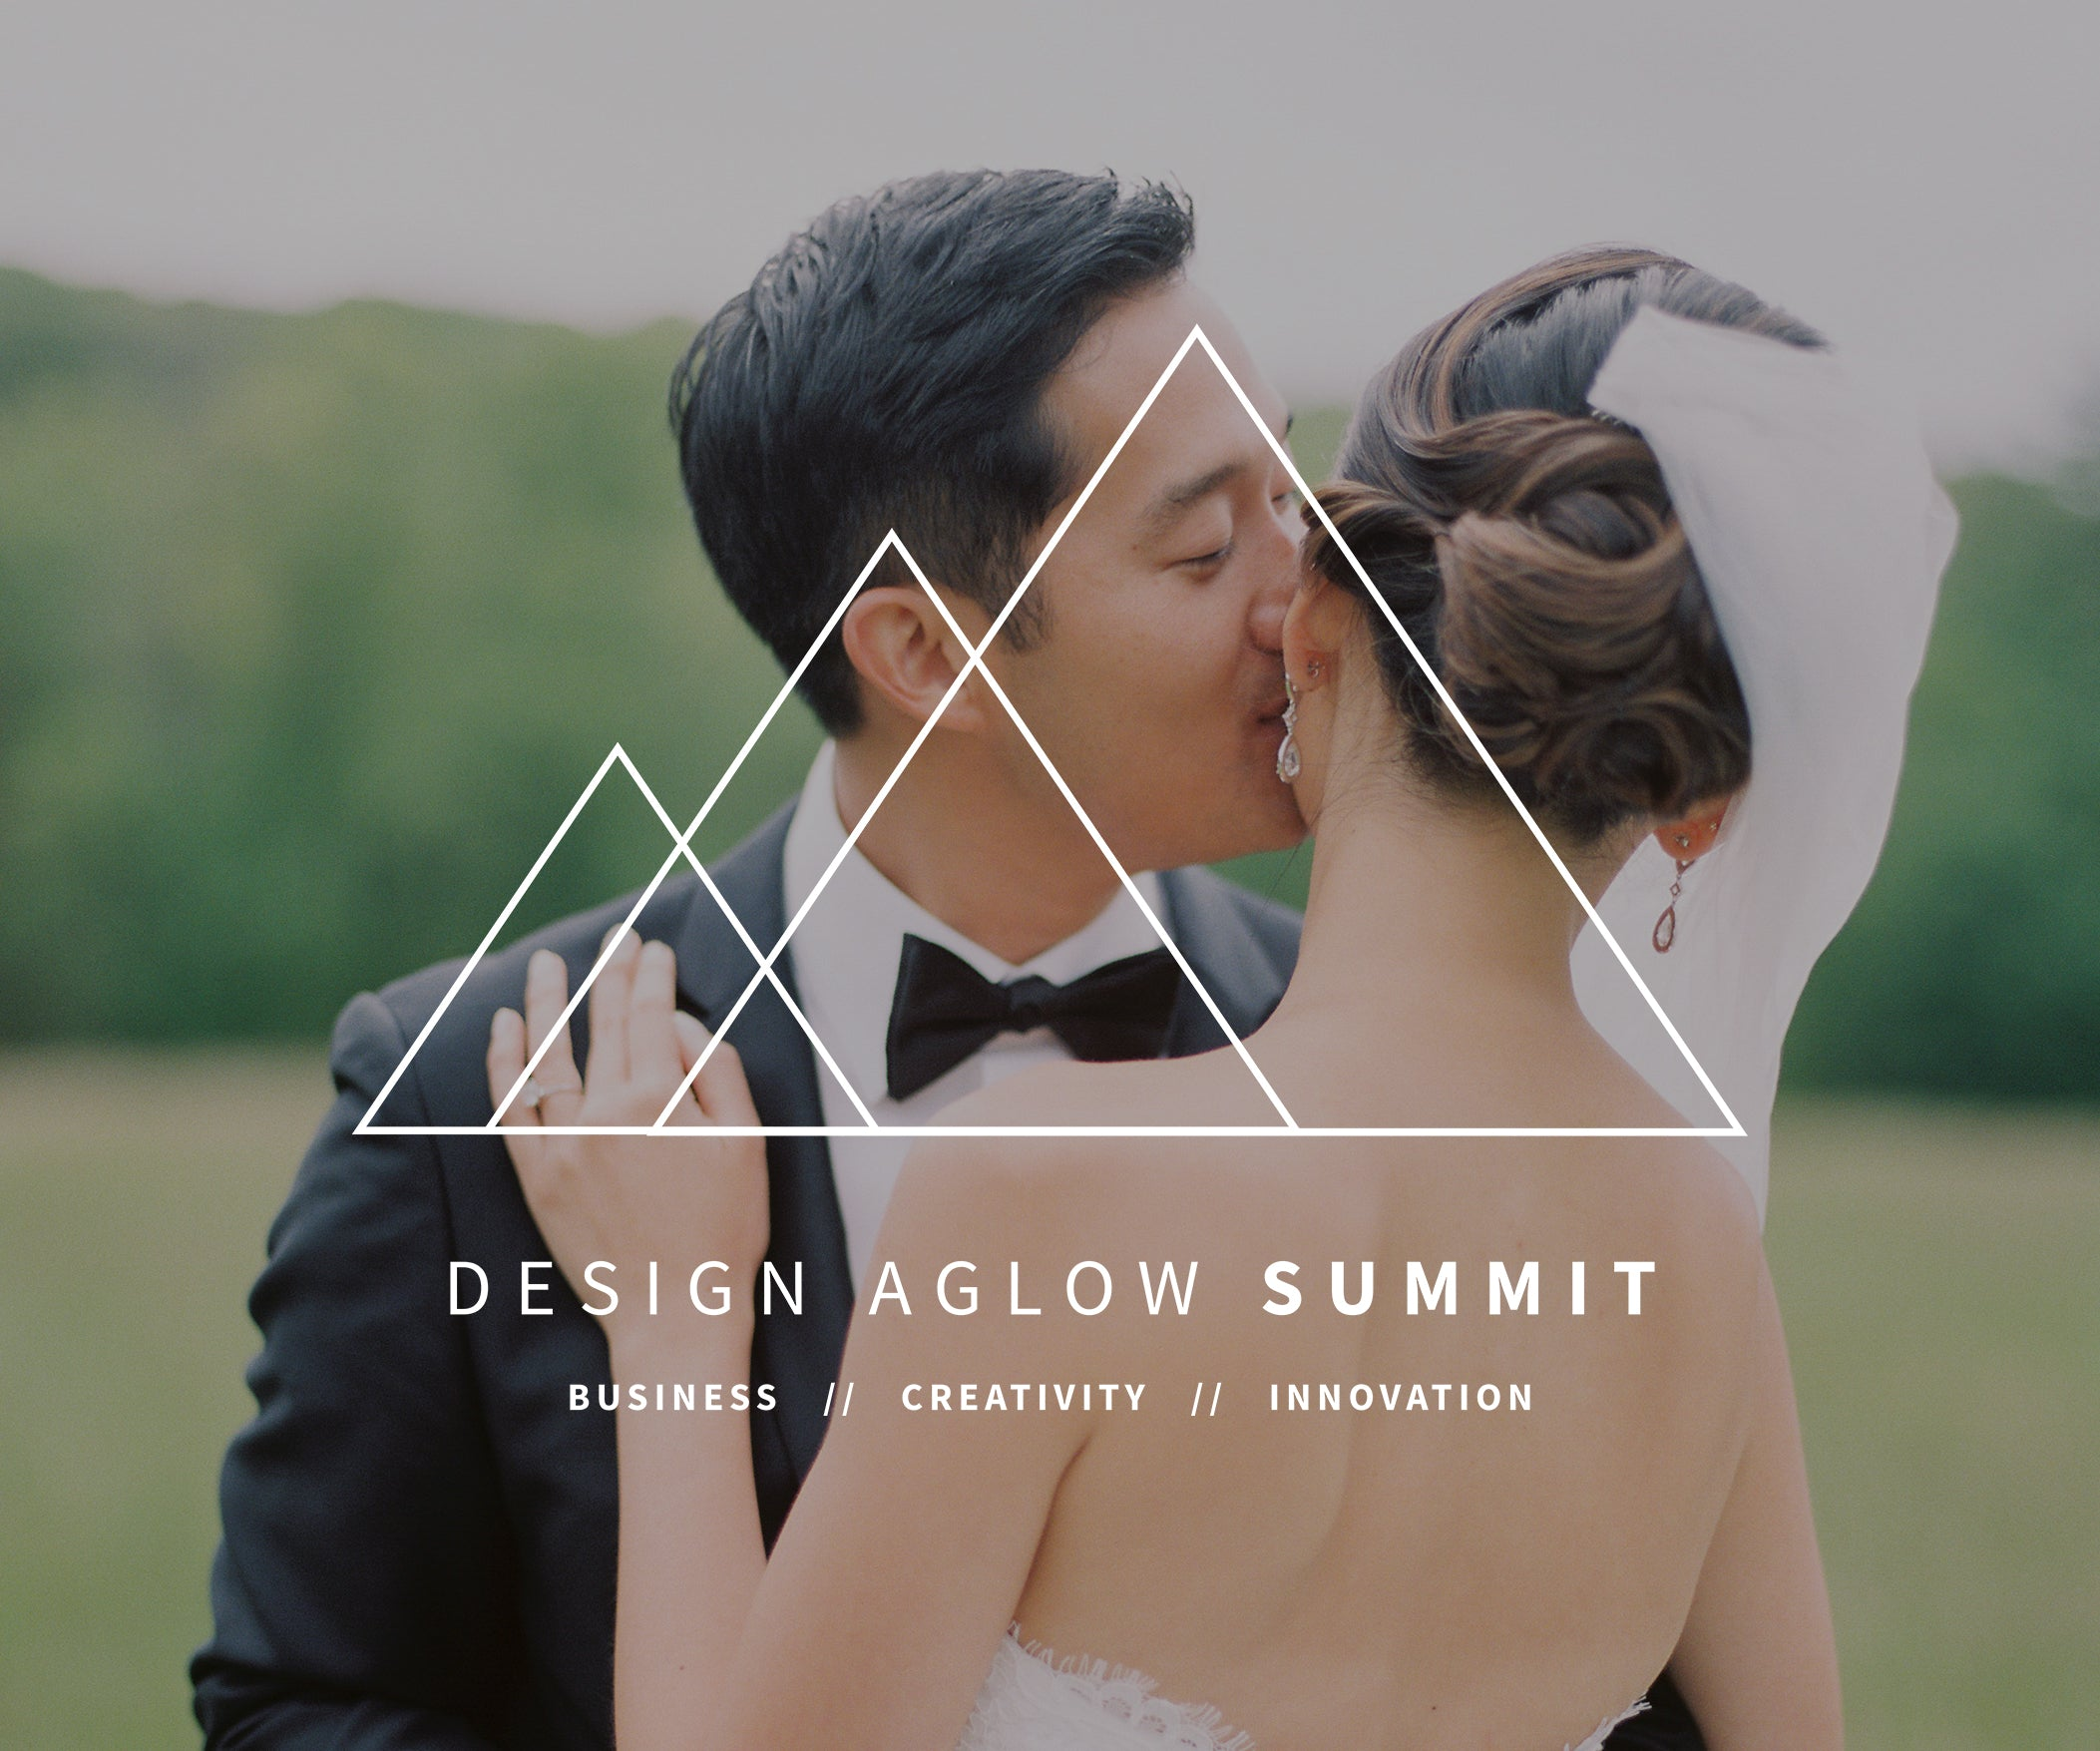 Design Aglow Summit: Jeremy Chou